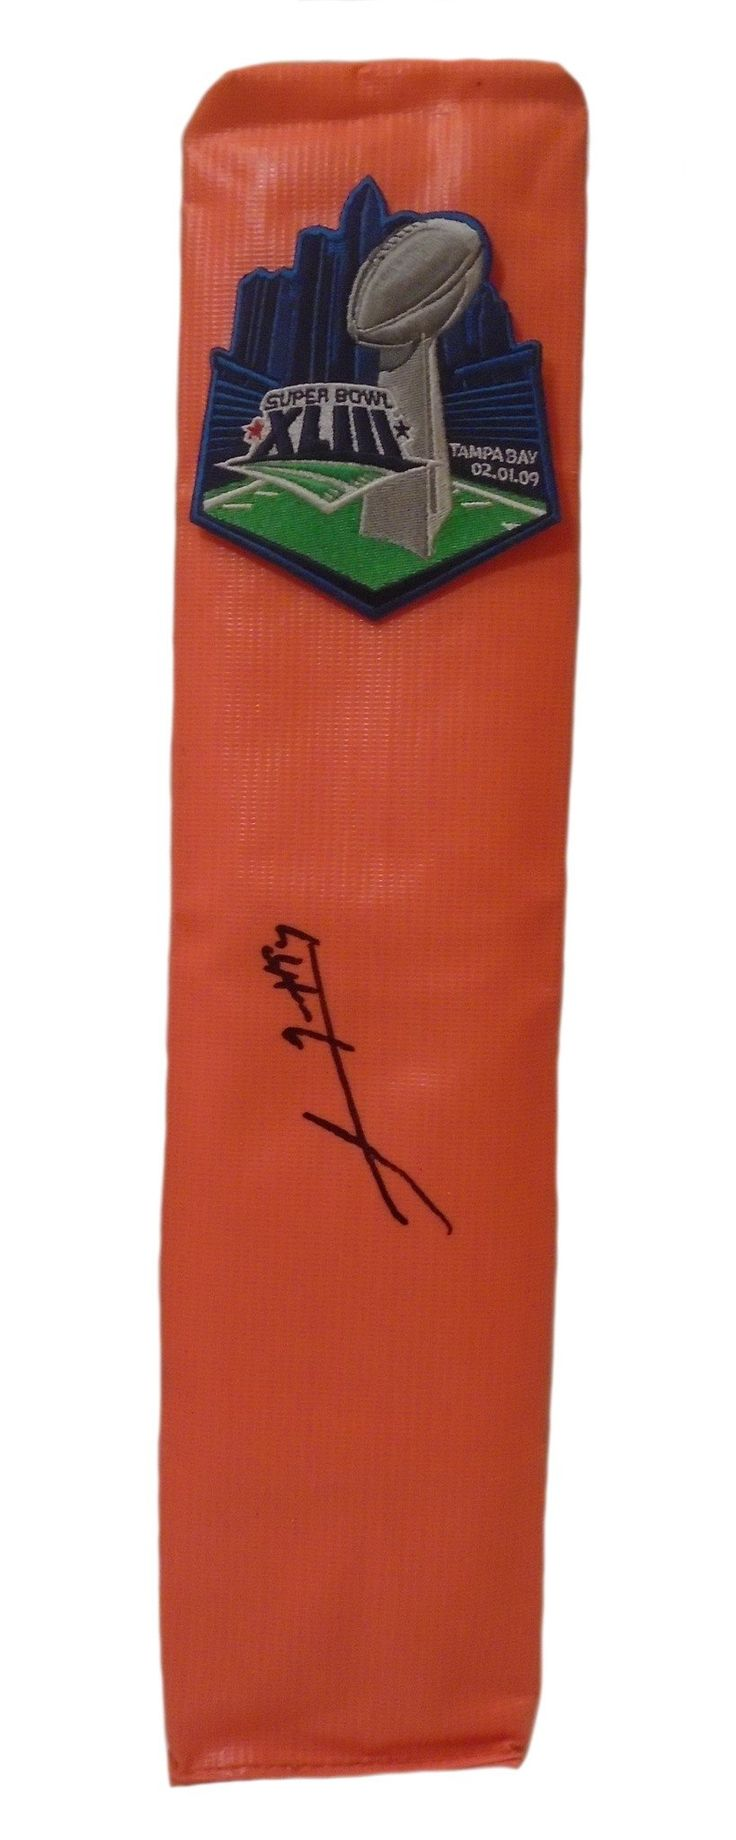 Lawrence Timmons Autographed Pittsburgh Steelers Super Bowl XLIII Full Size Football End. This is a brand-new custom Lawrence Timmons signed Pittsburgh Steelers Super Bowl XLIII full size football end zone pylon.  This pylon measures 4 inches (Width)  X 4 inches (Length) X 18 inches (Height).  Lawrence signed the pylon in black sharpie. Check out the photo of Lawrence signing for us. ** Proof photo is included for free with purchase. Please click on images to enlarge. Please browse our…